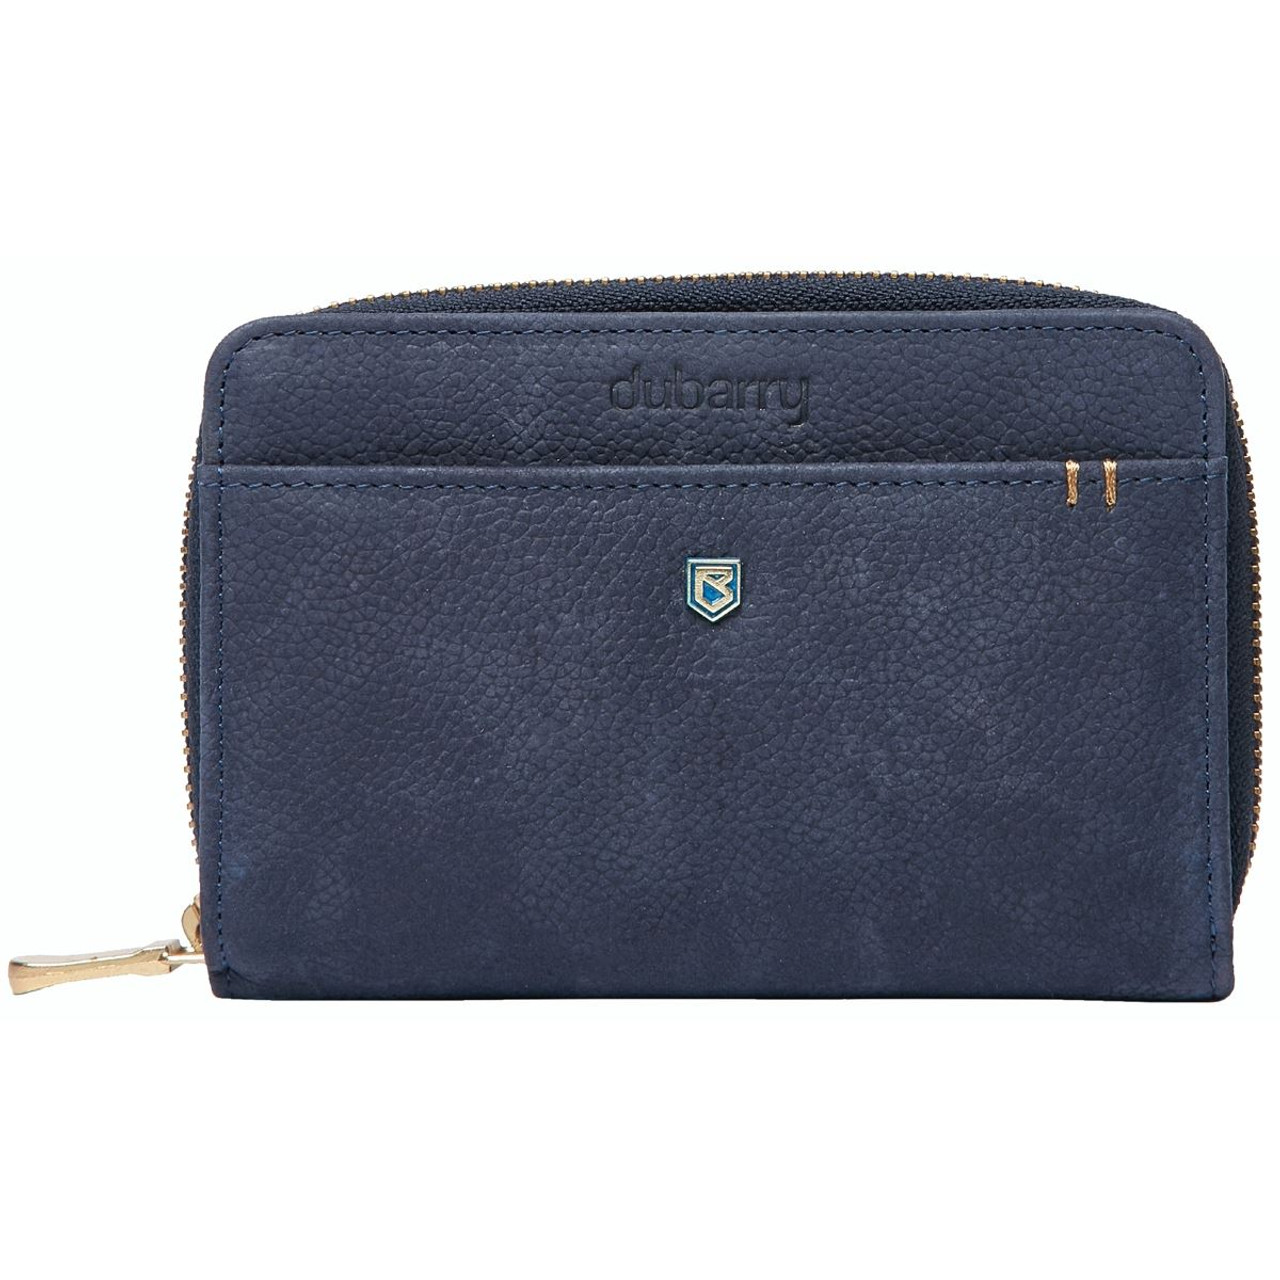 Dubarry Portrush Wallet in Navy